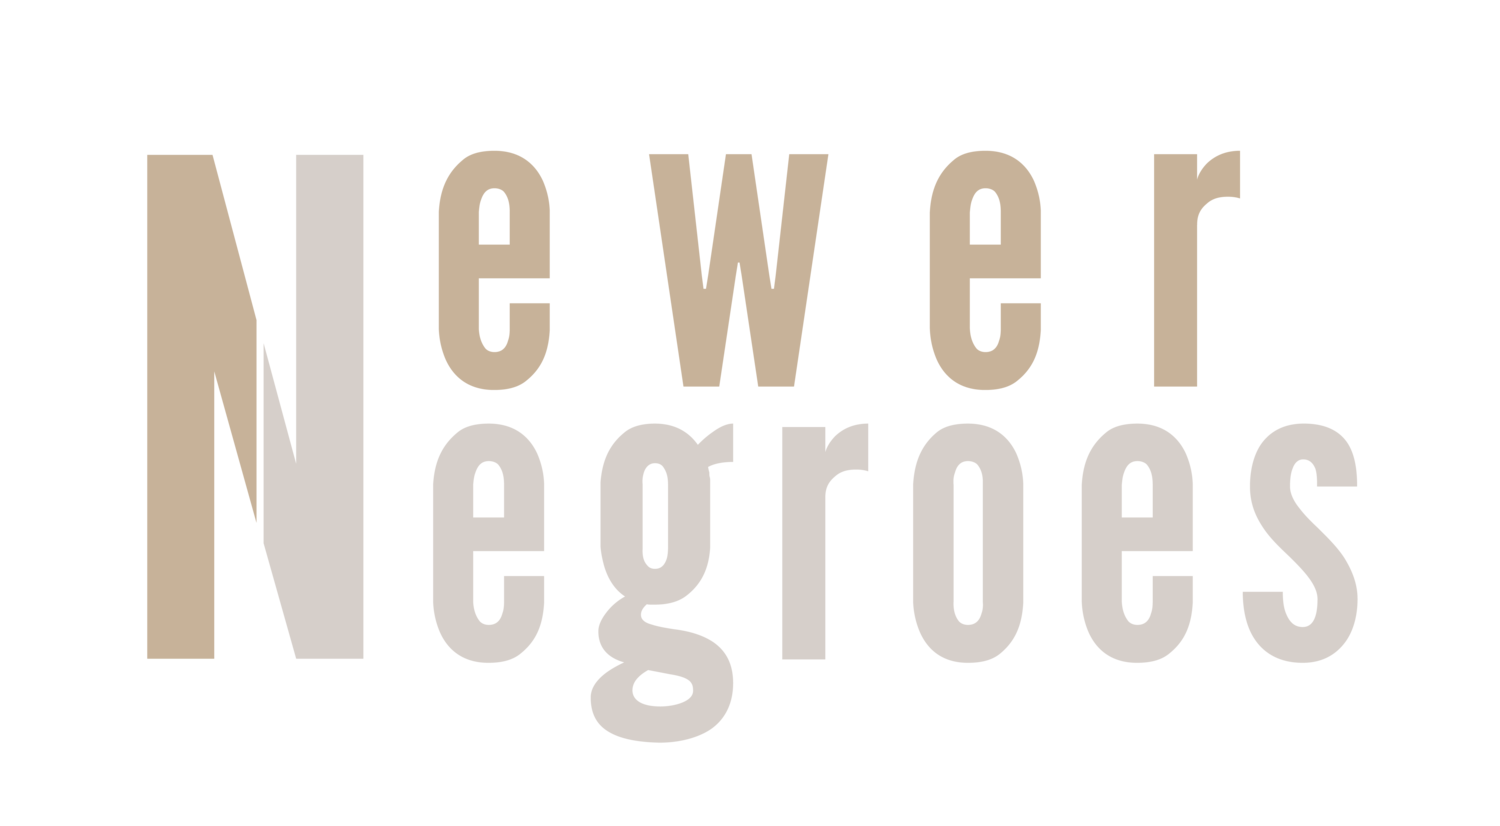 Newer Negroes